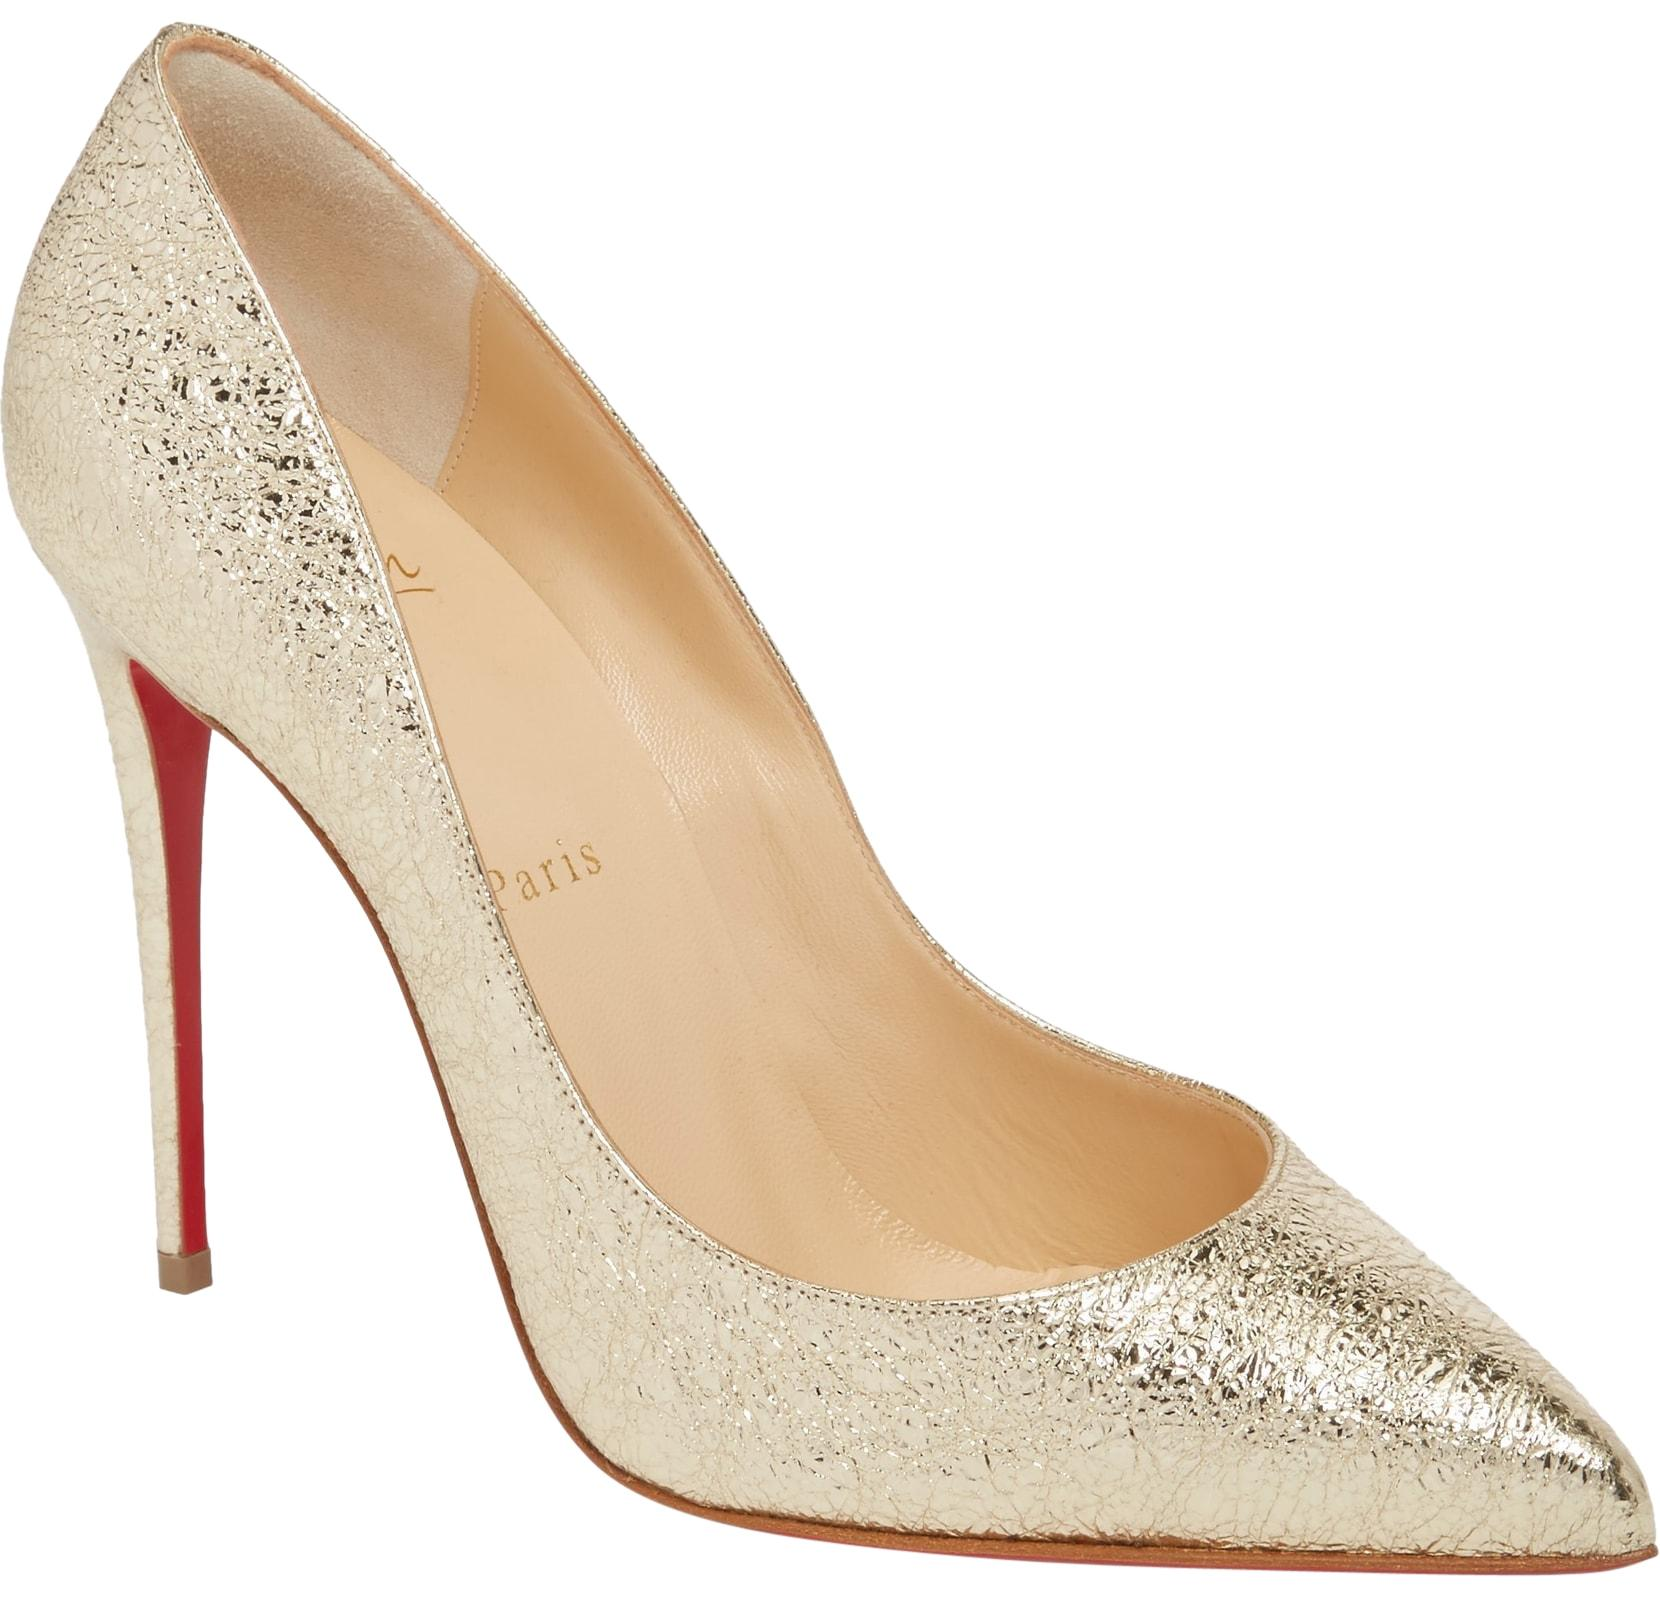 Christian Louboutin Gold Classic Pigalle Follies Platine 100mm Metallic Leather Point-toe Pumps Size EU 38 (Approx. US 8) Regular (M, B)